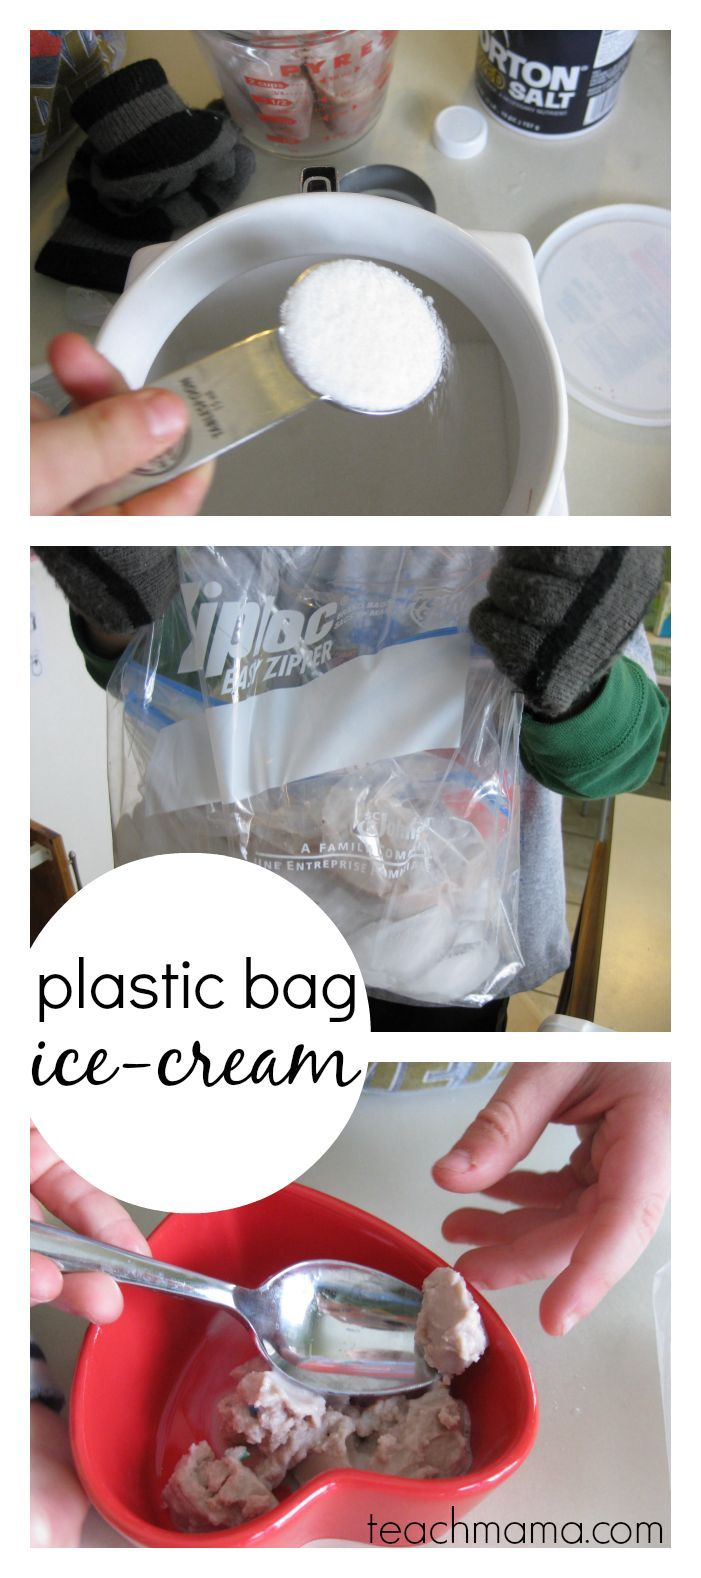 easy, homemade plastic bag ice-cream - teach mama